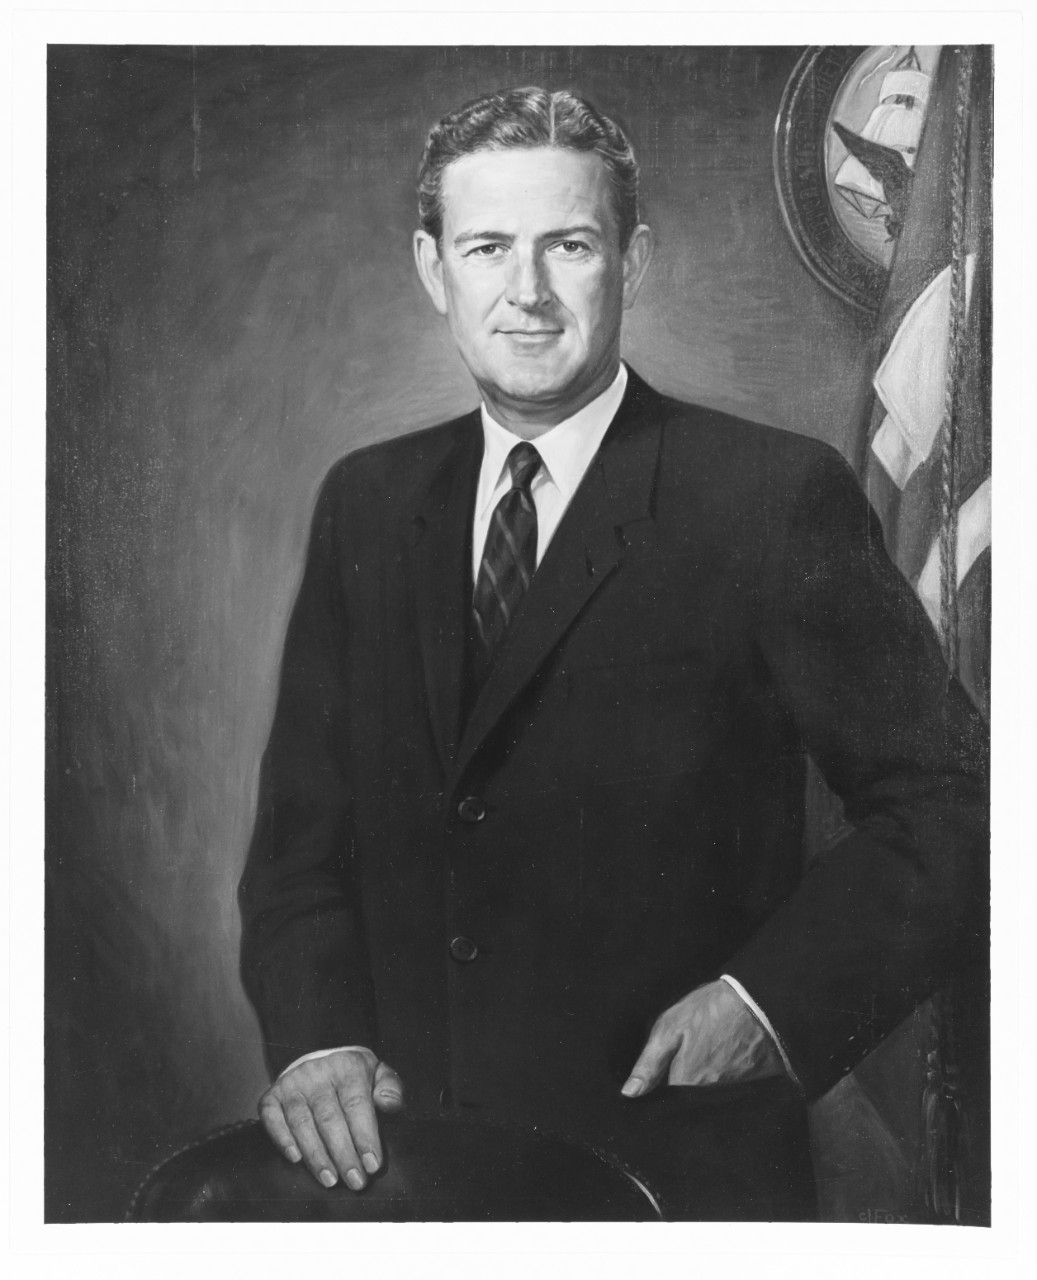 Portrait of John B. Connally, Jr.